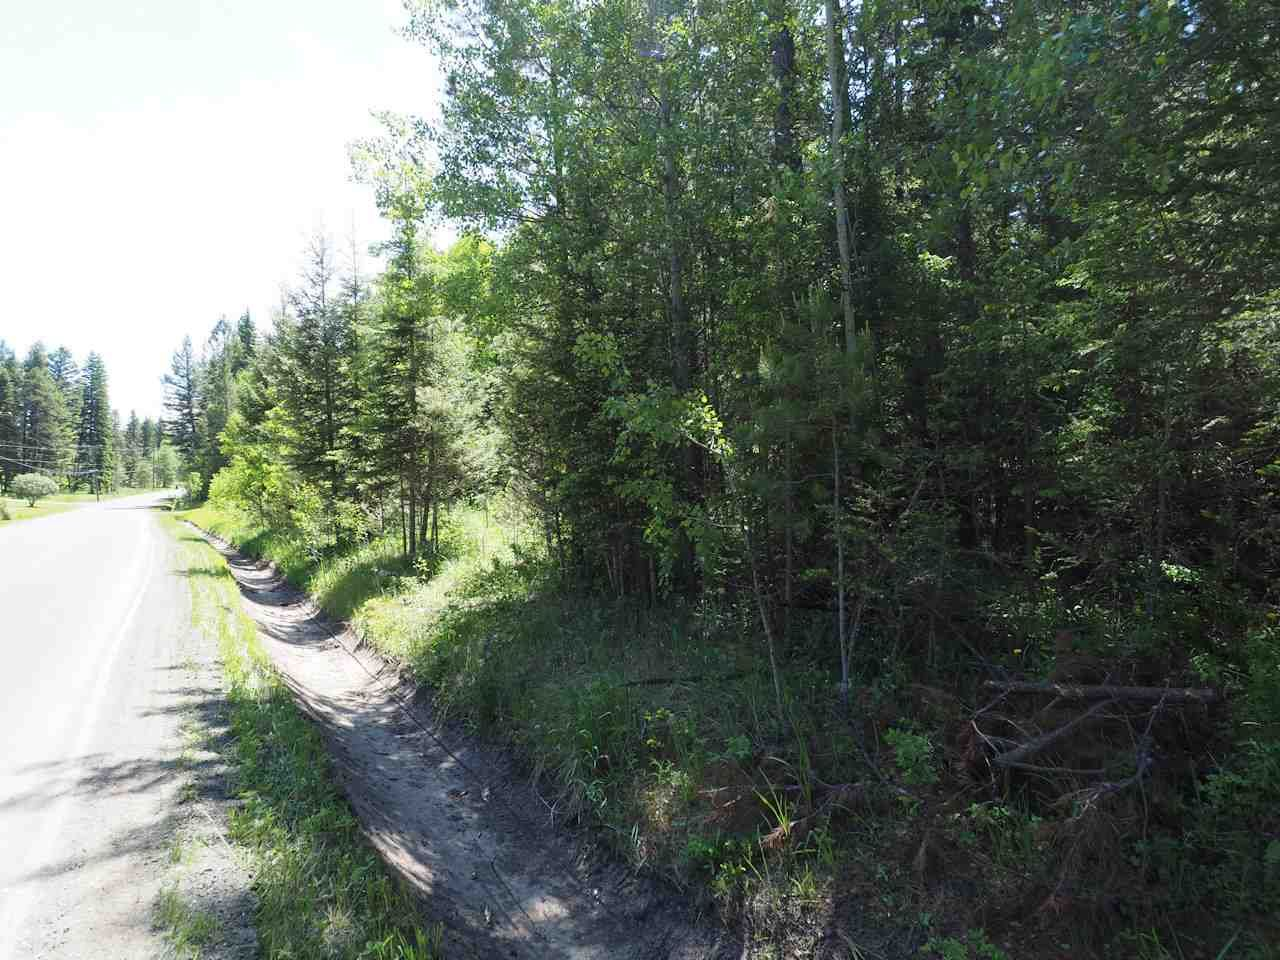 Photo 5: Photos: LOT 9 EASZEE Drive in 108 Mile Ranch: 108 Ranch Land for sale (100 Mile House (Zone 10))  : MLS®# R2467252